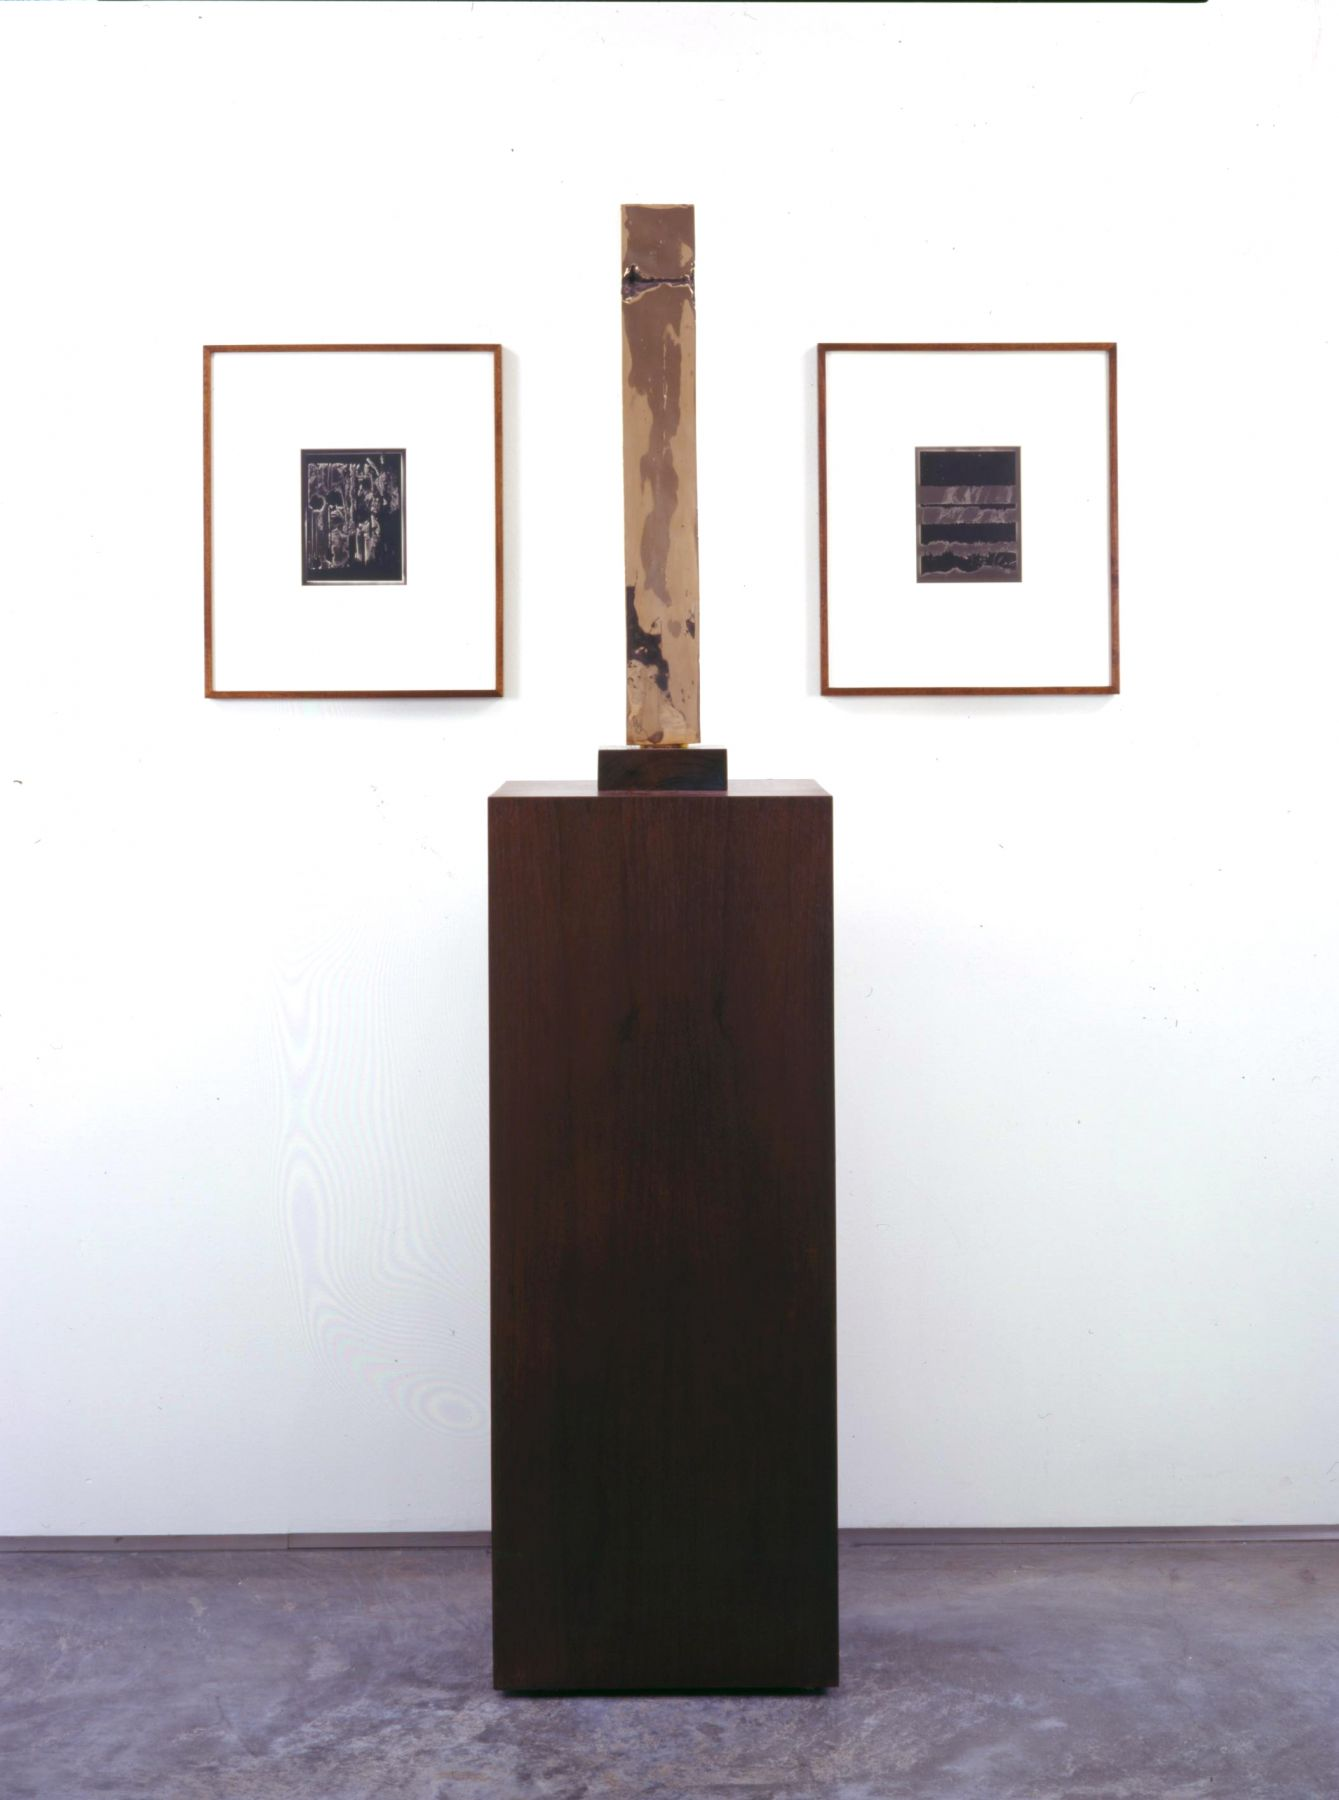 installation by anthony pearson with rectangular sculpture flanked by two photographs